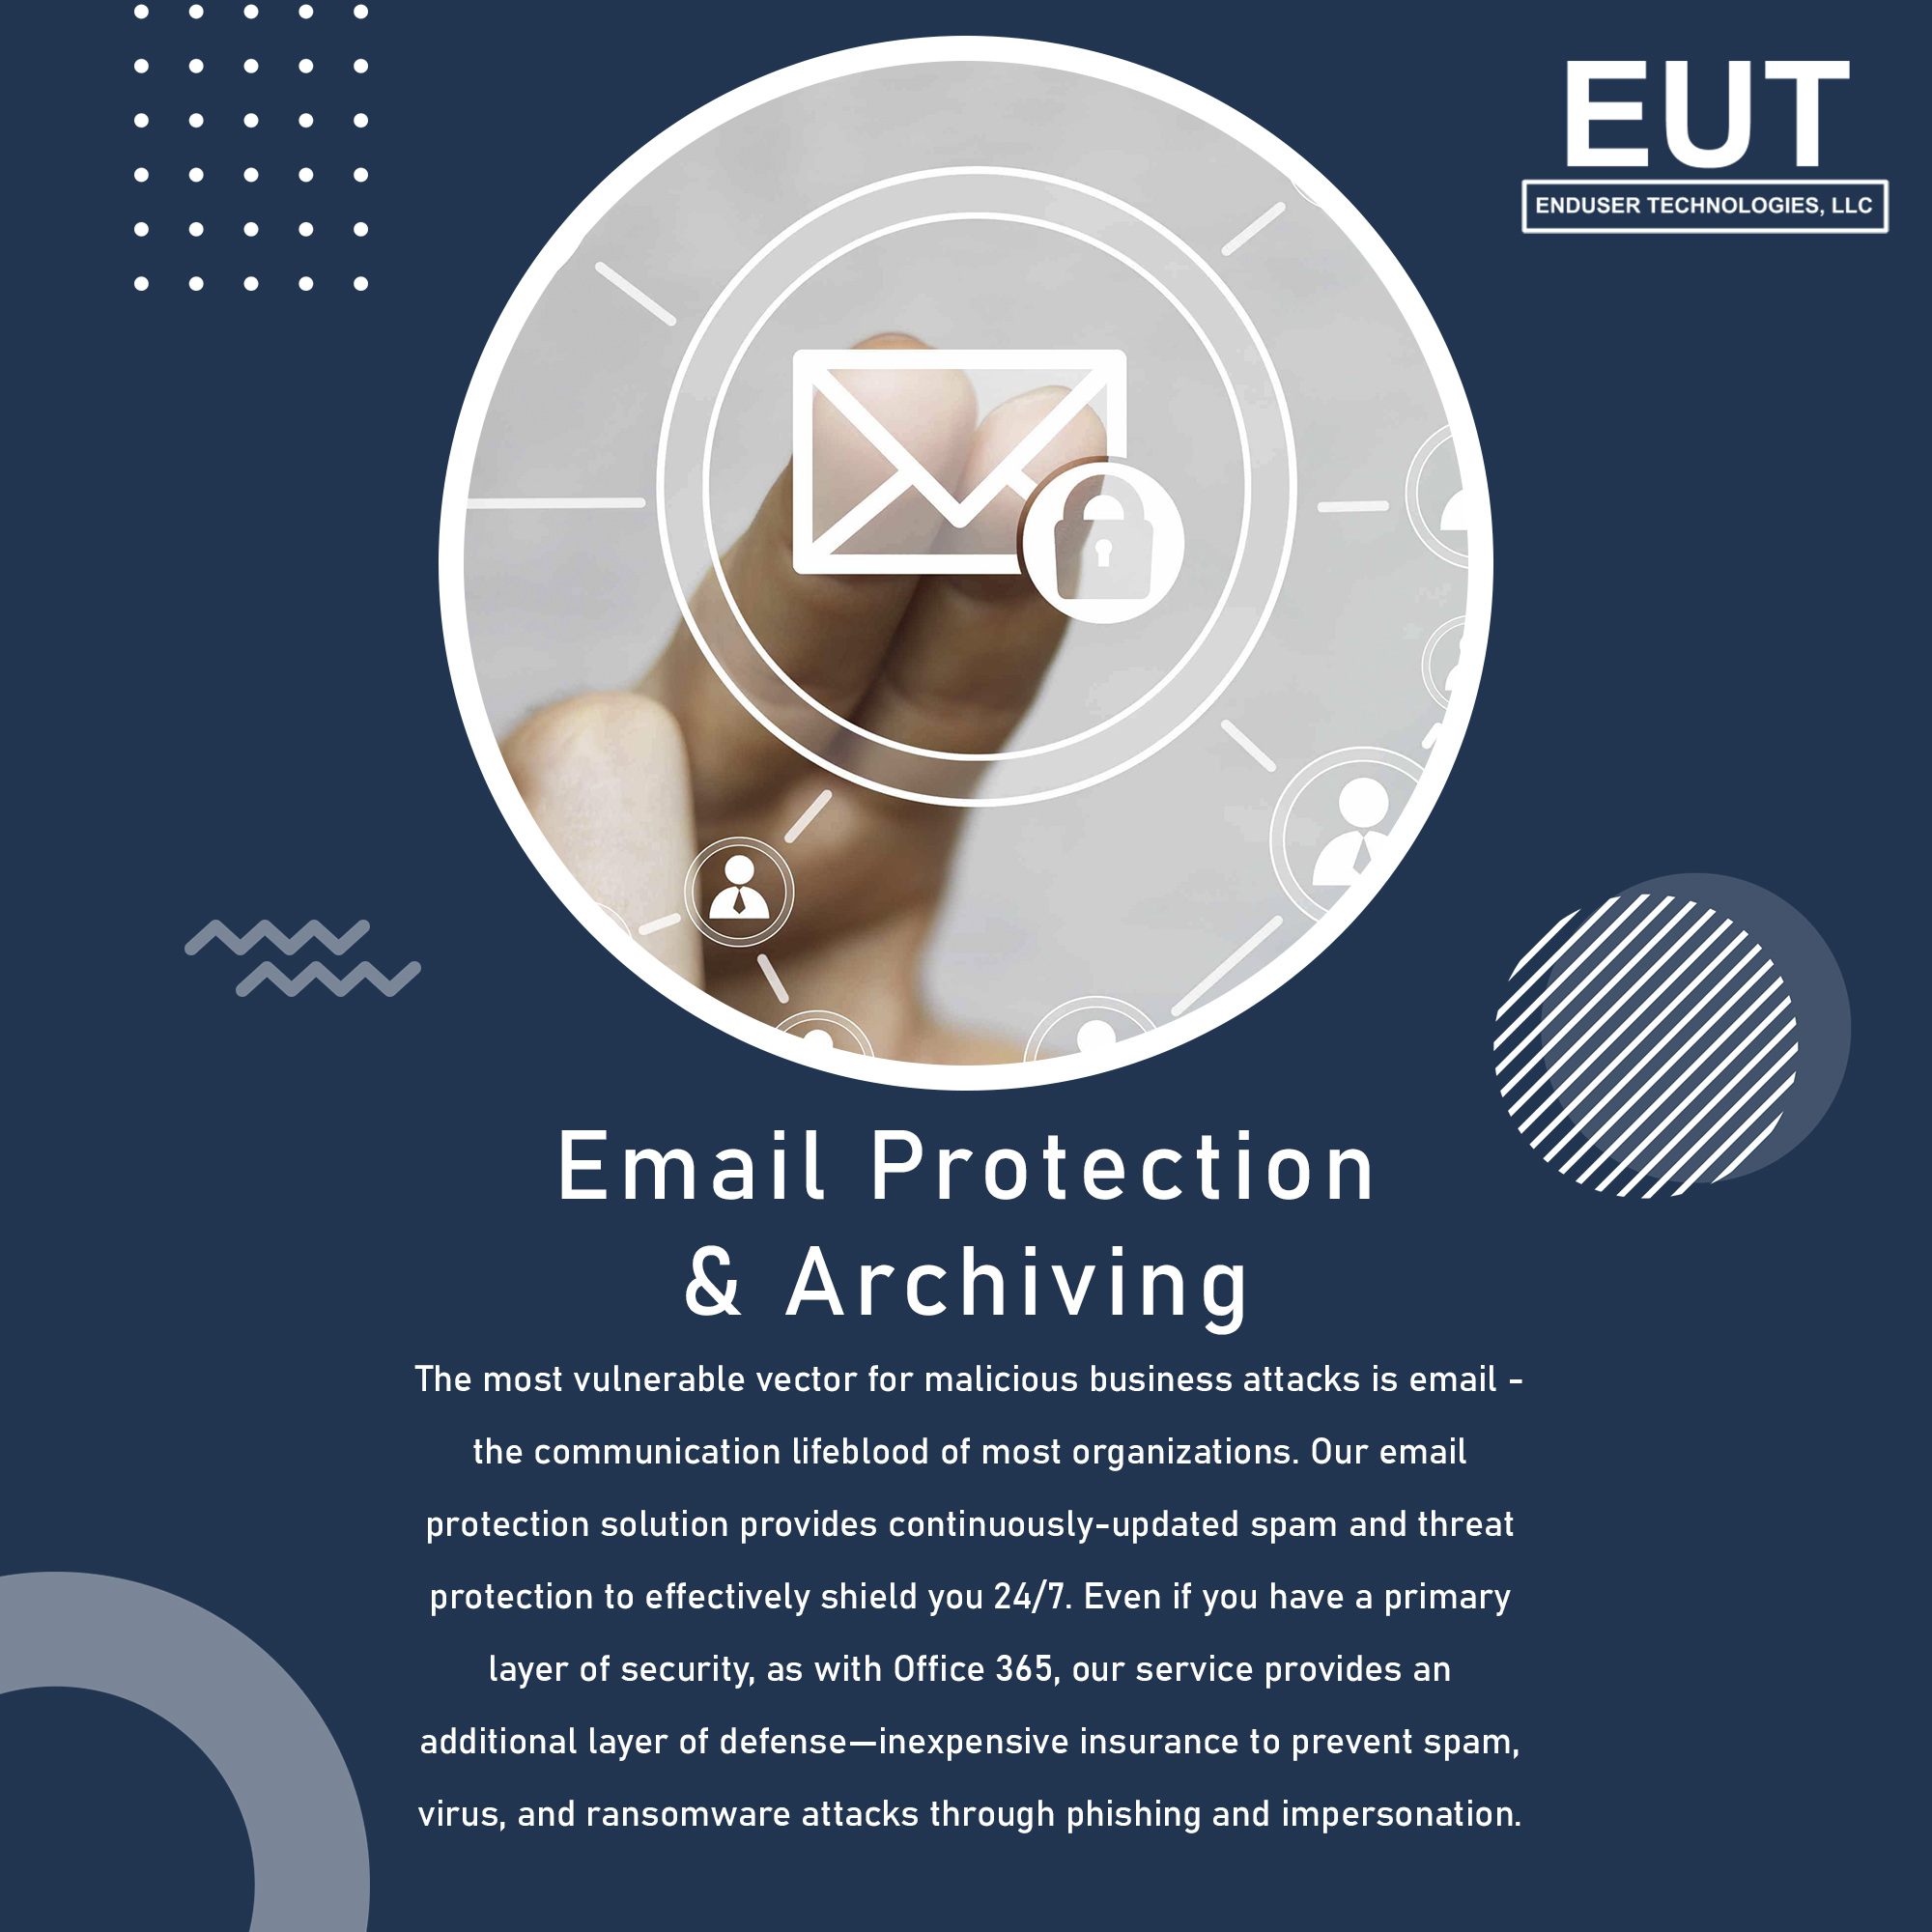 Email Protection & Archiving